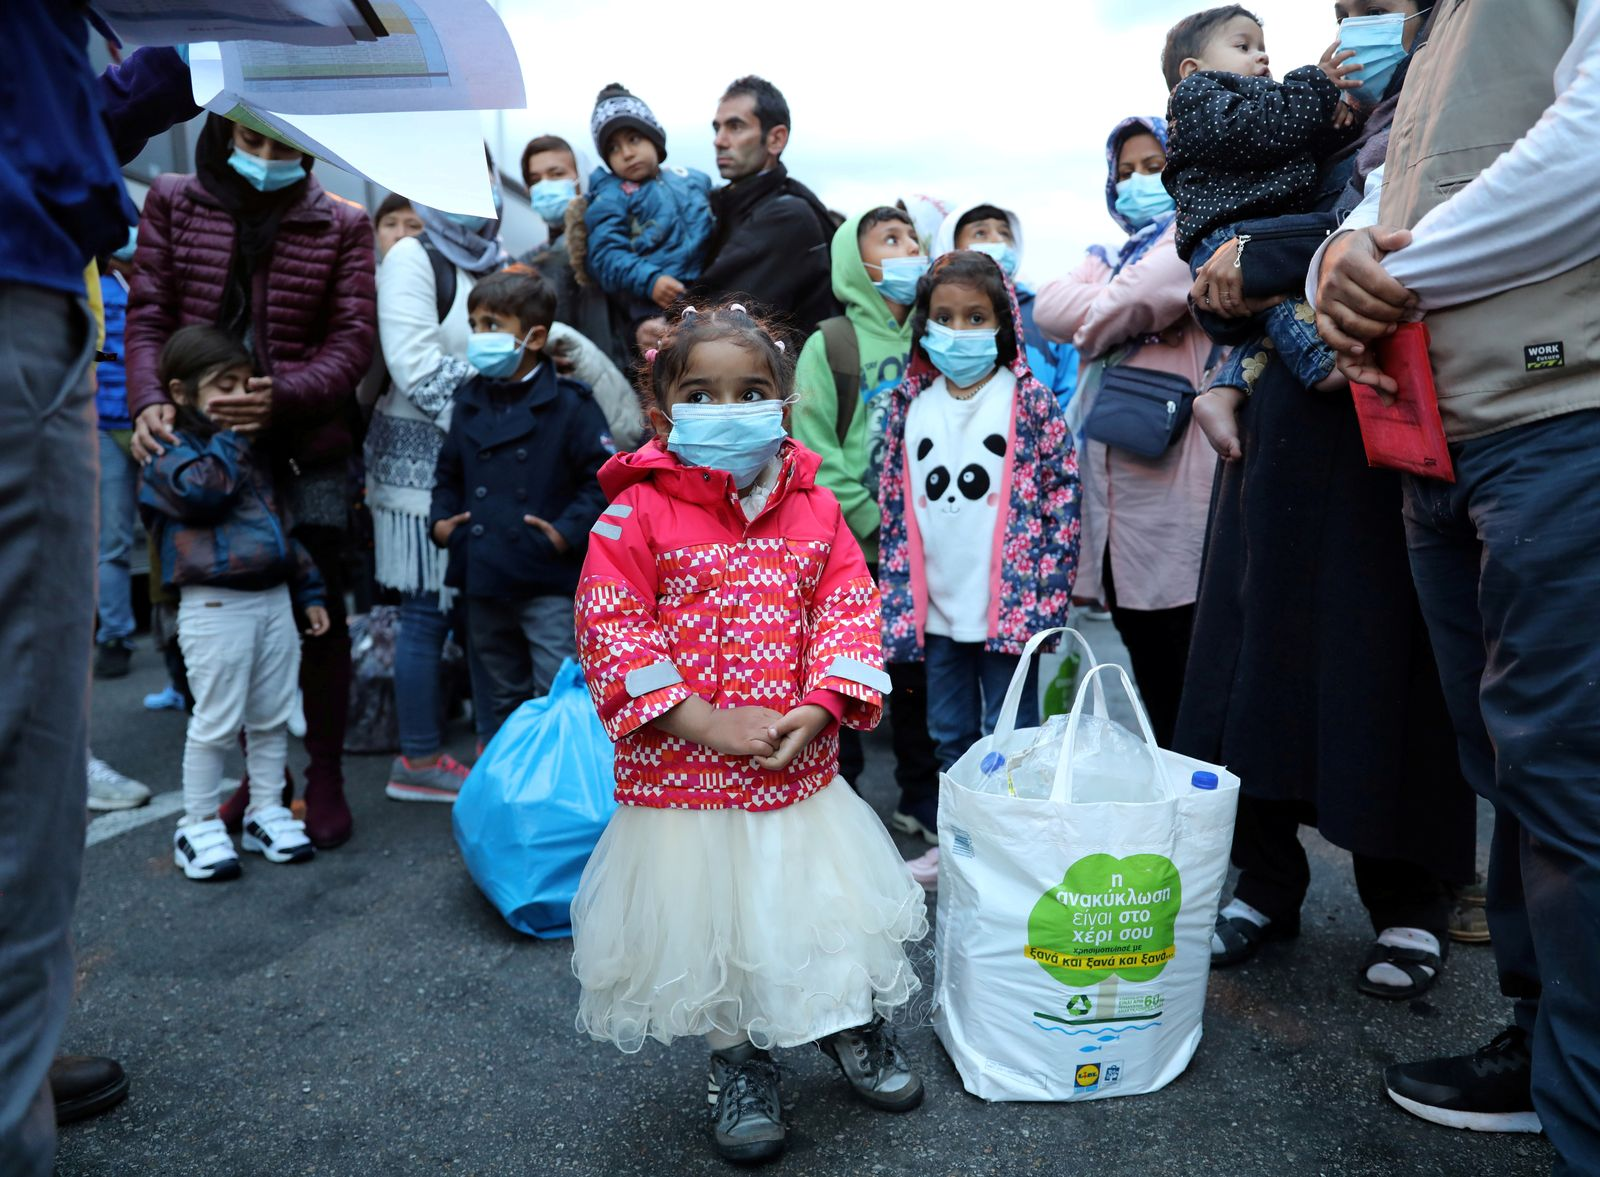 FILE PHOTO: Migrants from the Moria camp in Lesbos wait to board busses at Piraeus port in Athens following the coronavirus disease (COVID-19) outbreak